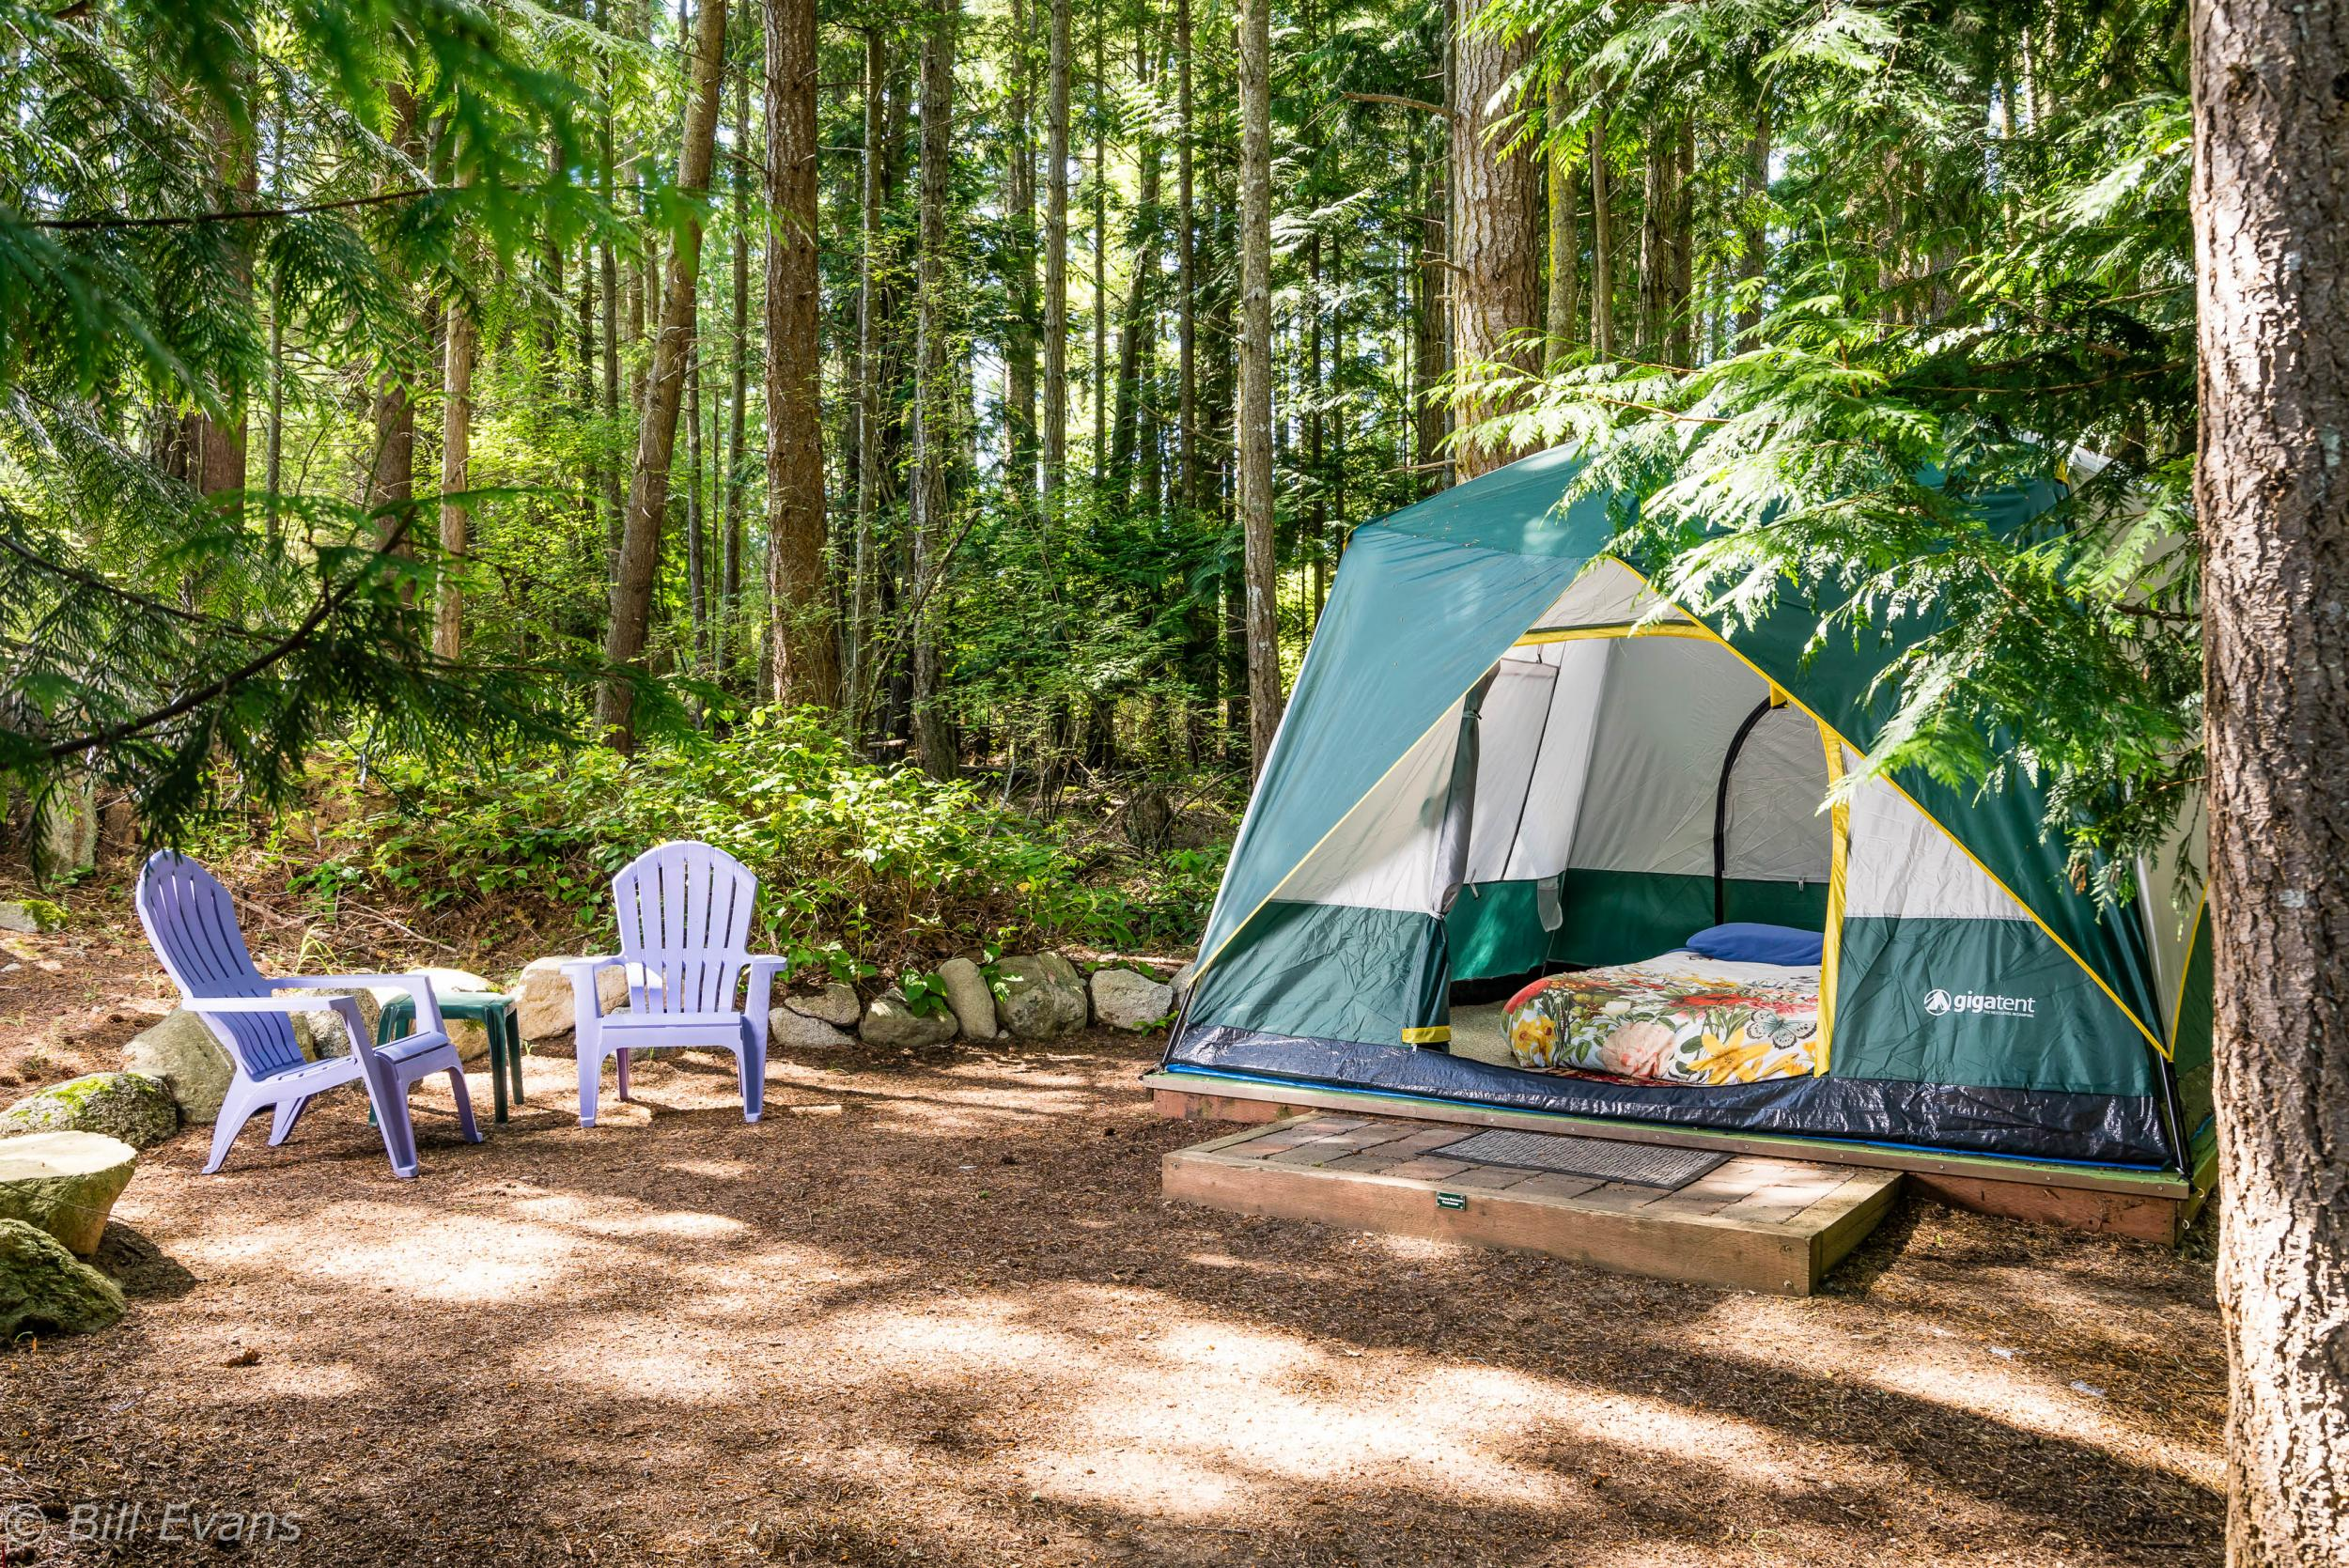 RV Campgrounds in Texas Let You Relax With Nature